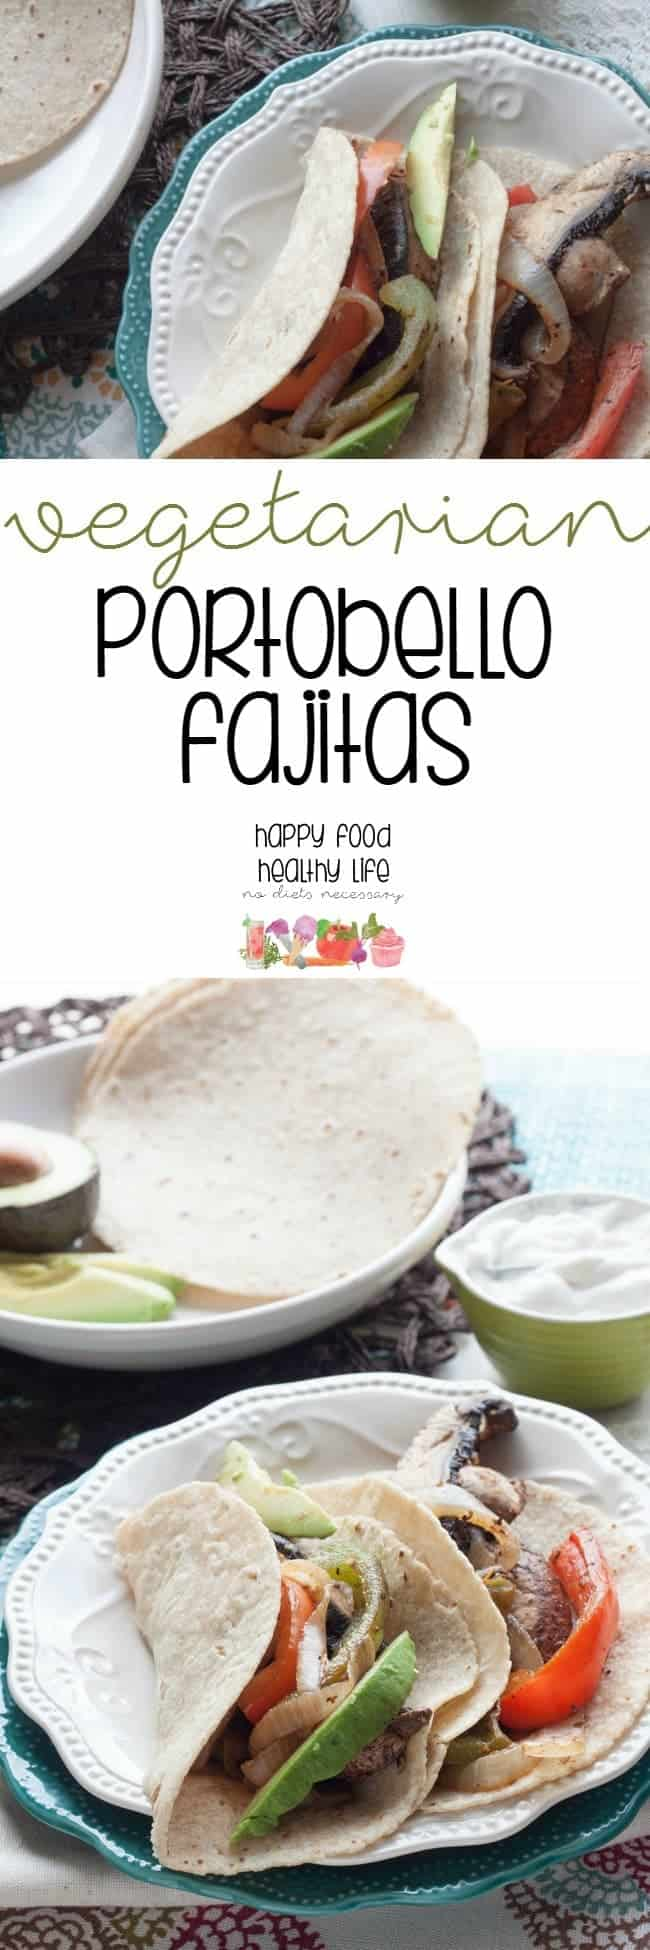 Vegetarian Portobello Fajitas - I was able to get this healthy dinner on the table within 20 minutes, which is exactly what I need for a busy weeknight.